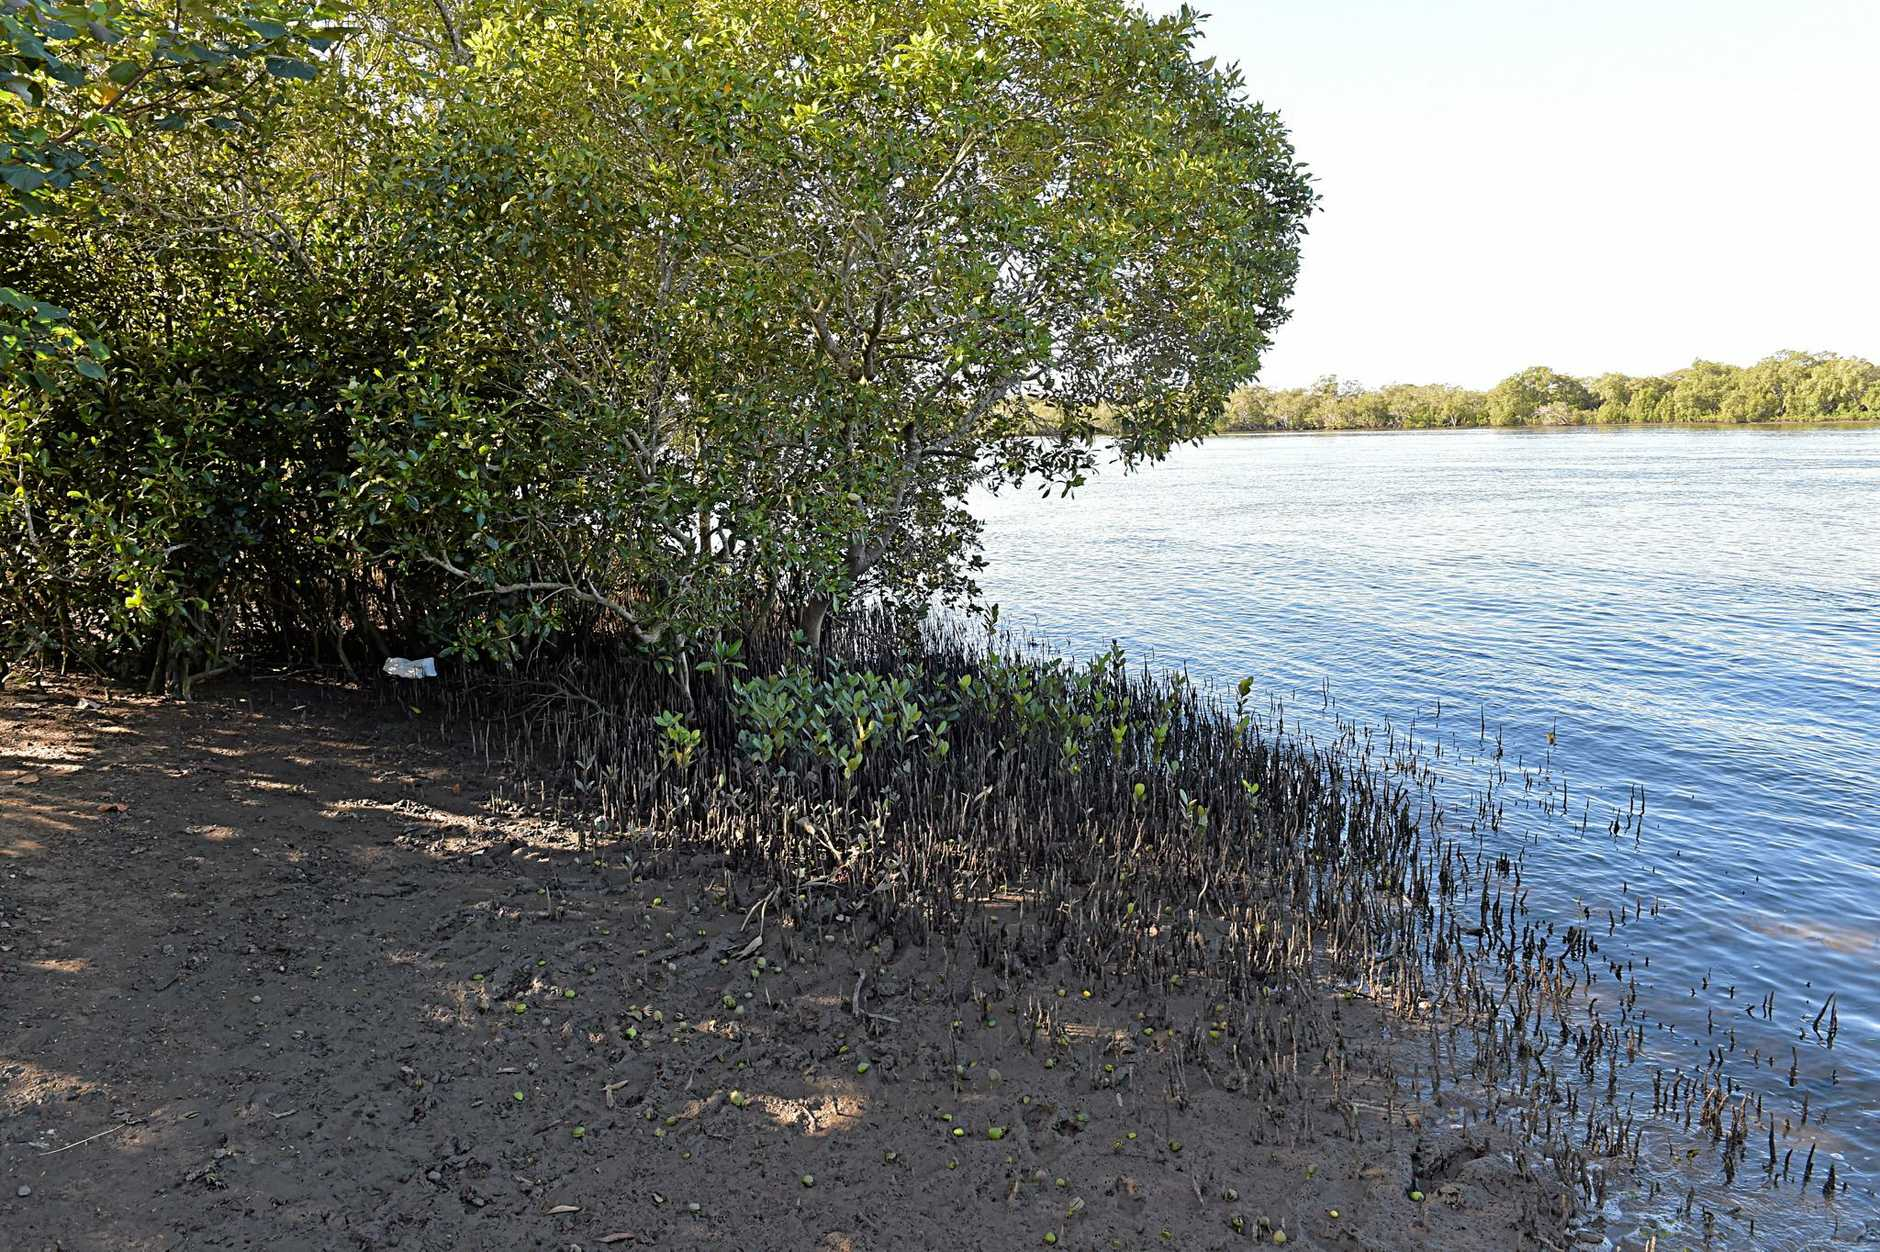 BAD ODOUR: The mangrove area at Bli Bli could be the source of a mystery smell which comes and goes at Bli Bli.